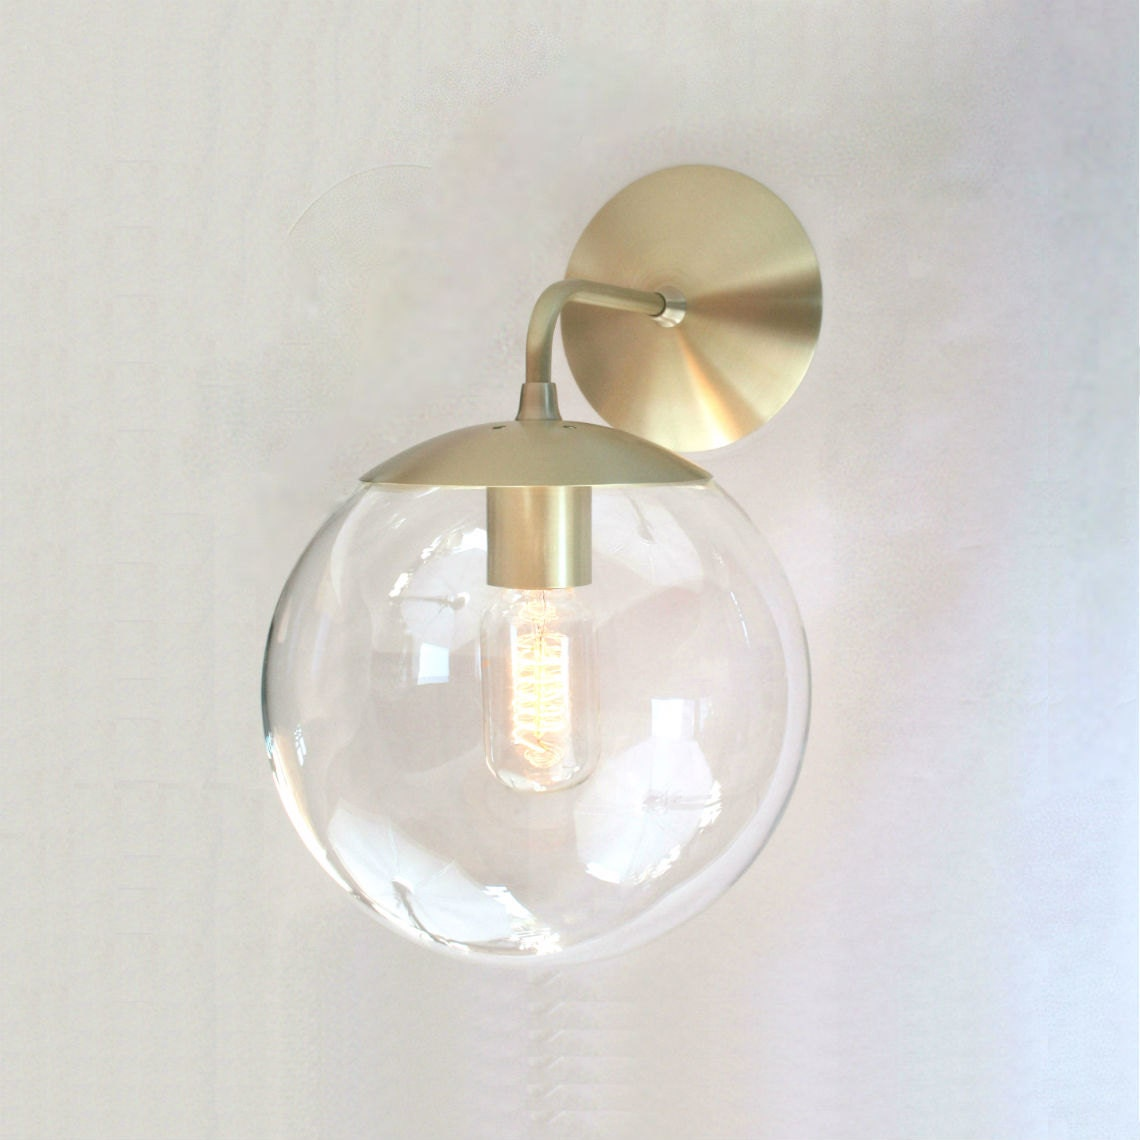 Mid century modern wall sconce light 8 clear glass globe for Contemporary bathroom wall sconces